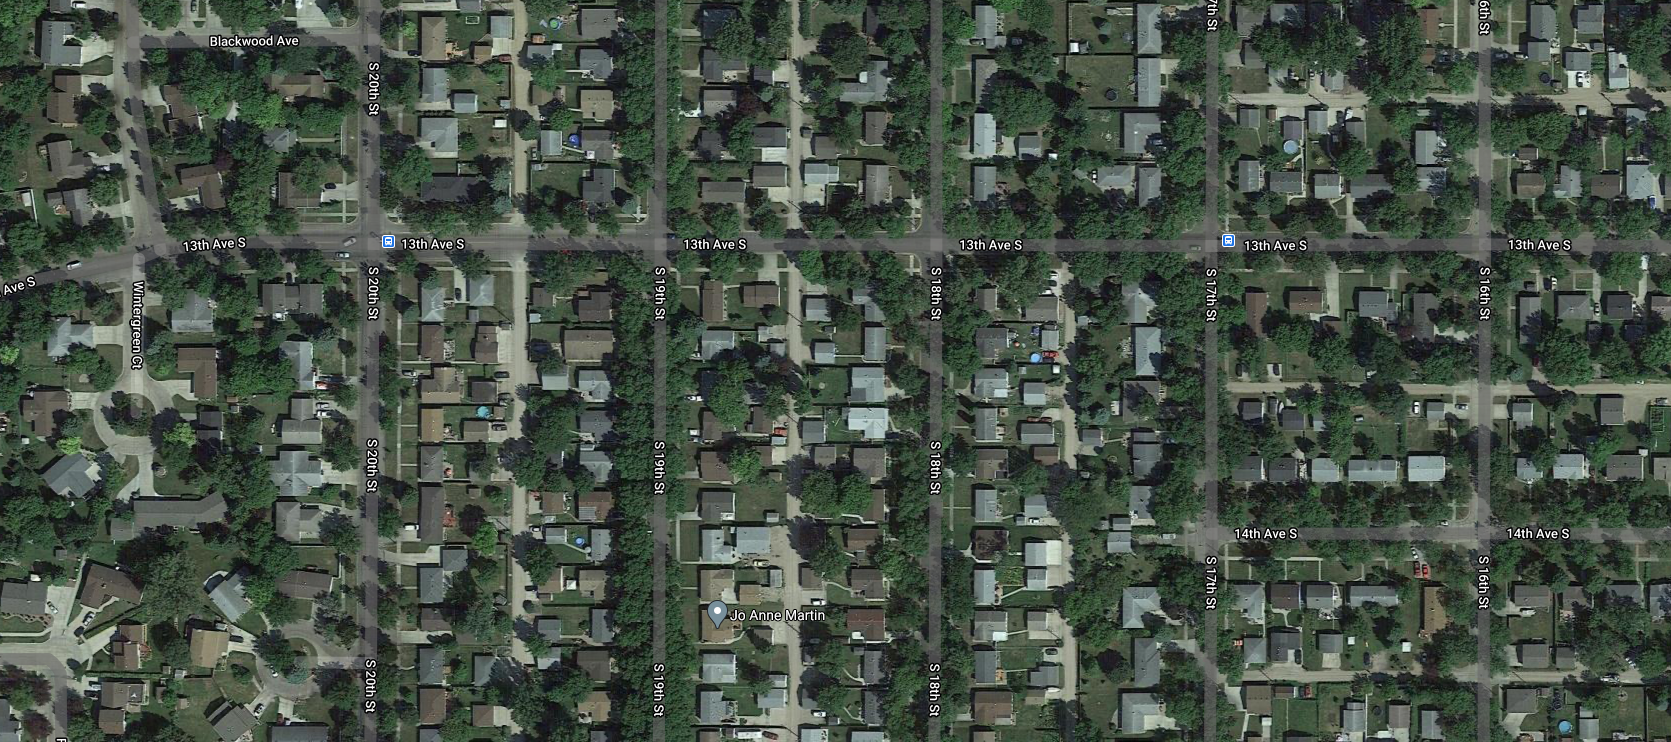 The American suburb has a lot of green space but it is all private backyards. There are no public areas.